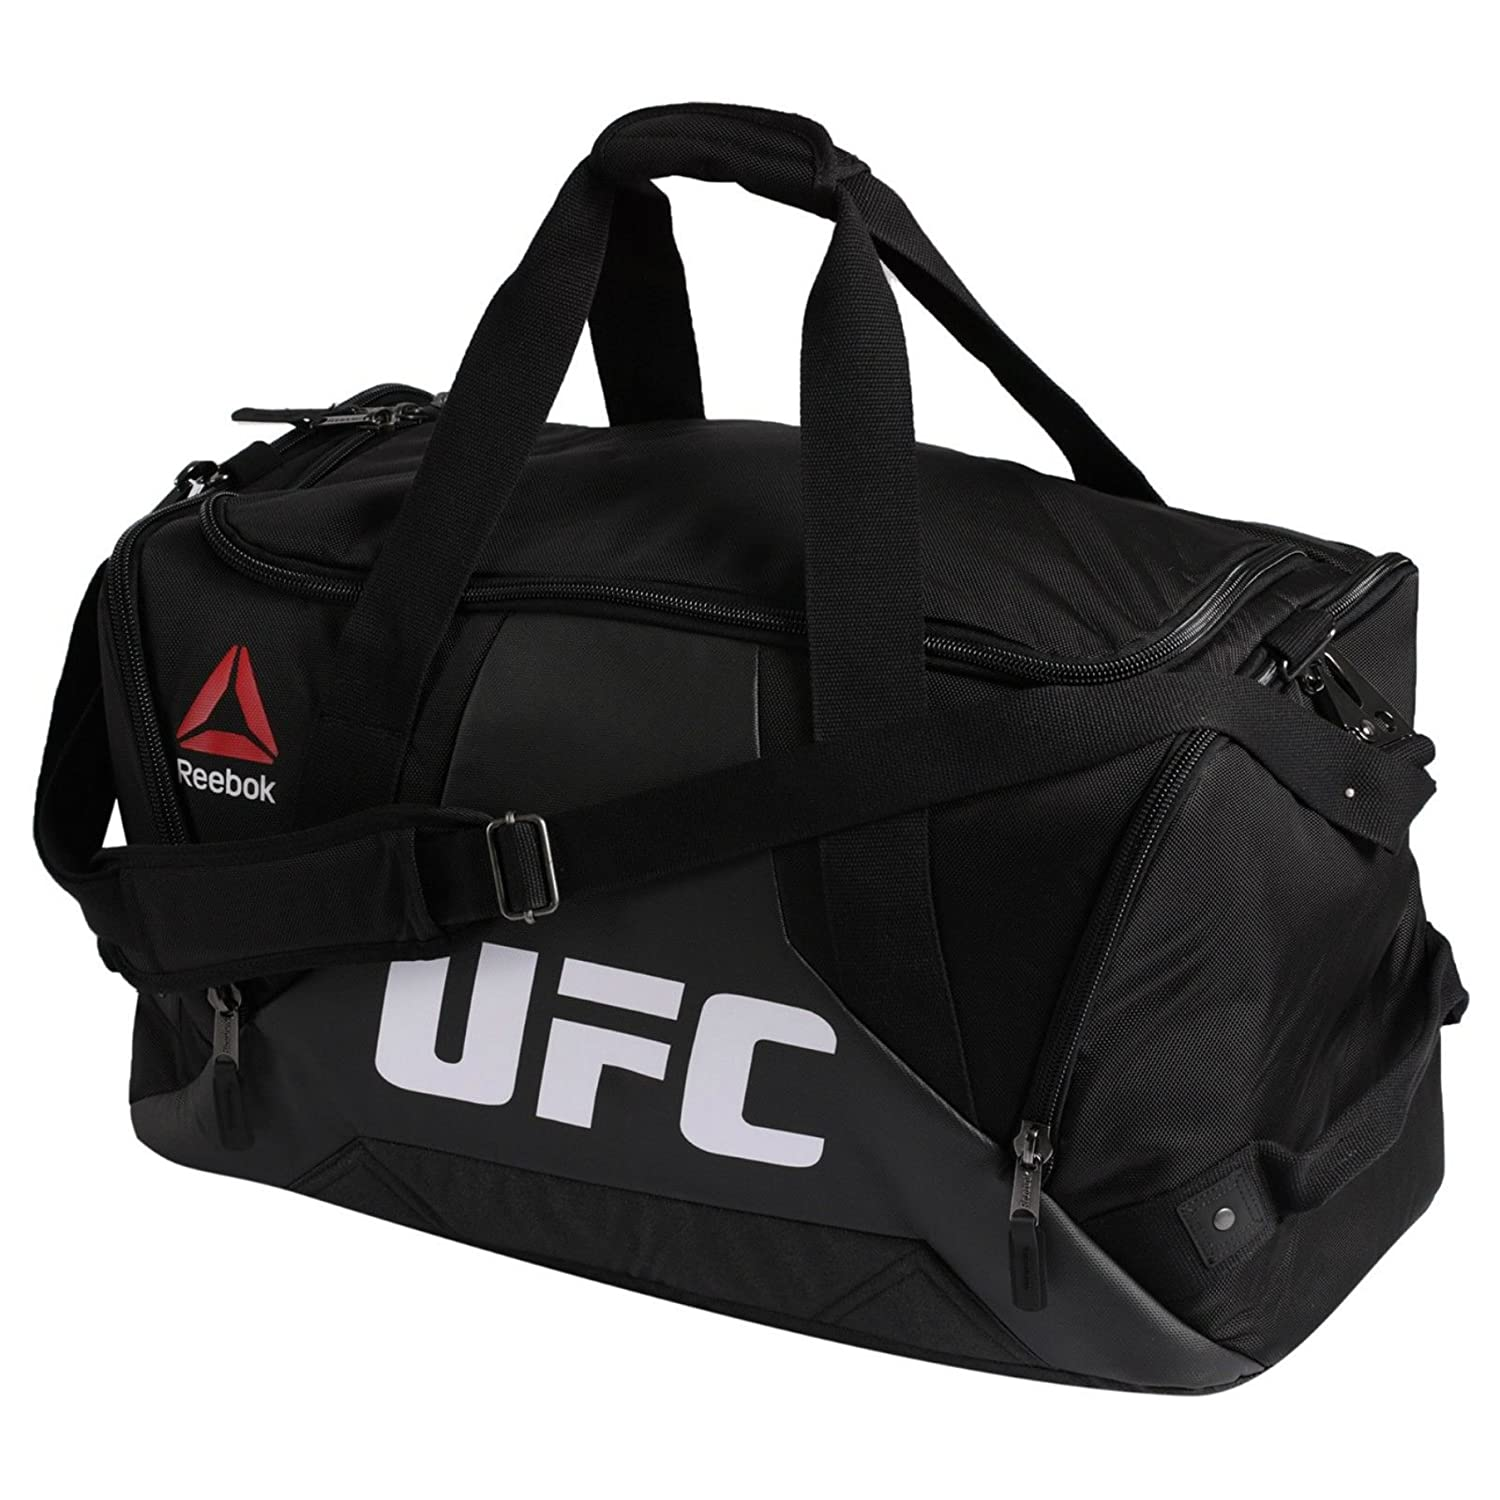 Reebok Combat Grip UFC Fitness Training Duffle Sport Bag in Black White Red Yellow